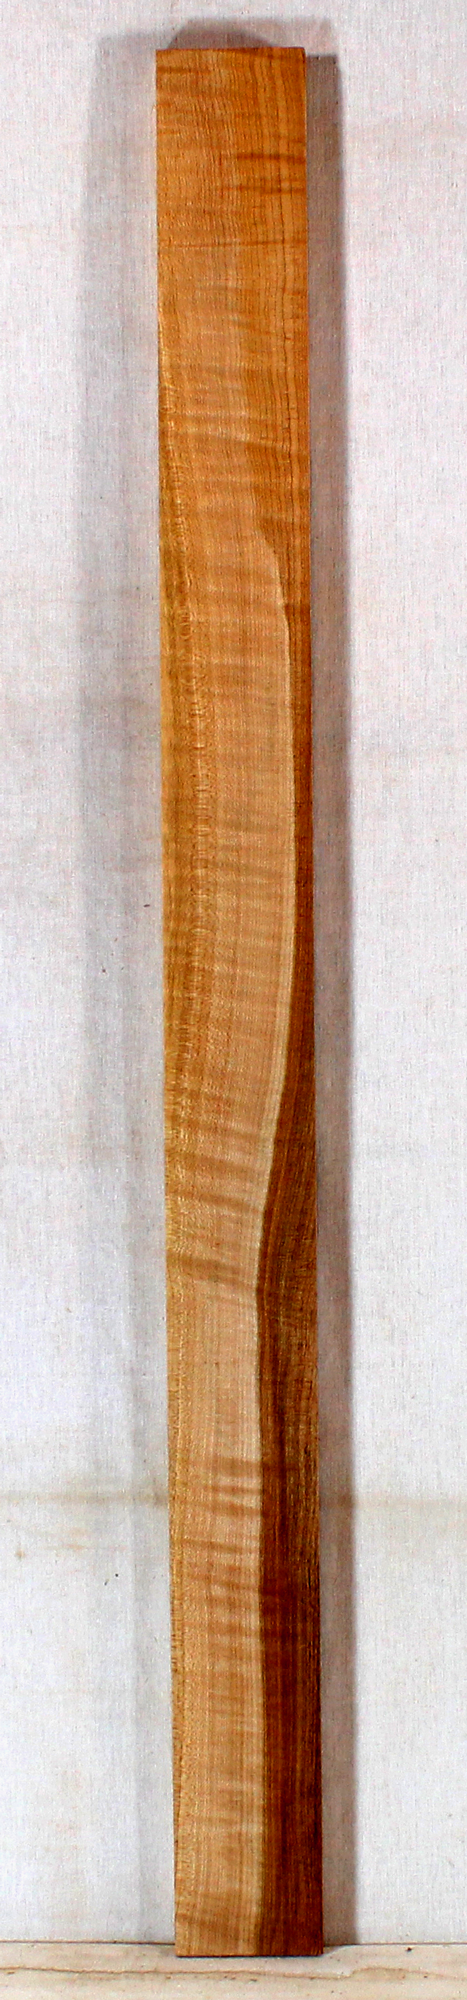 Maple Dulcimer Finger Board (BK90)